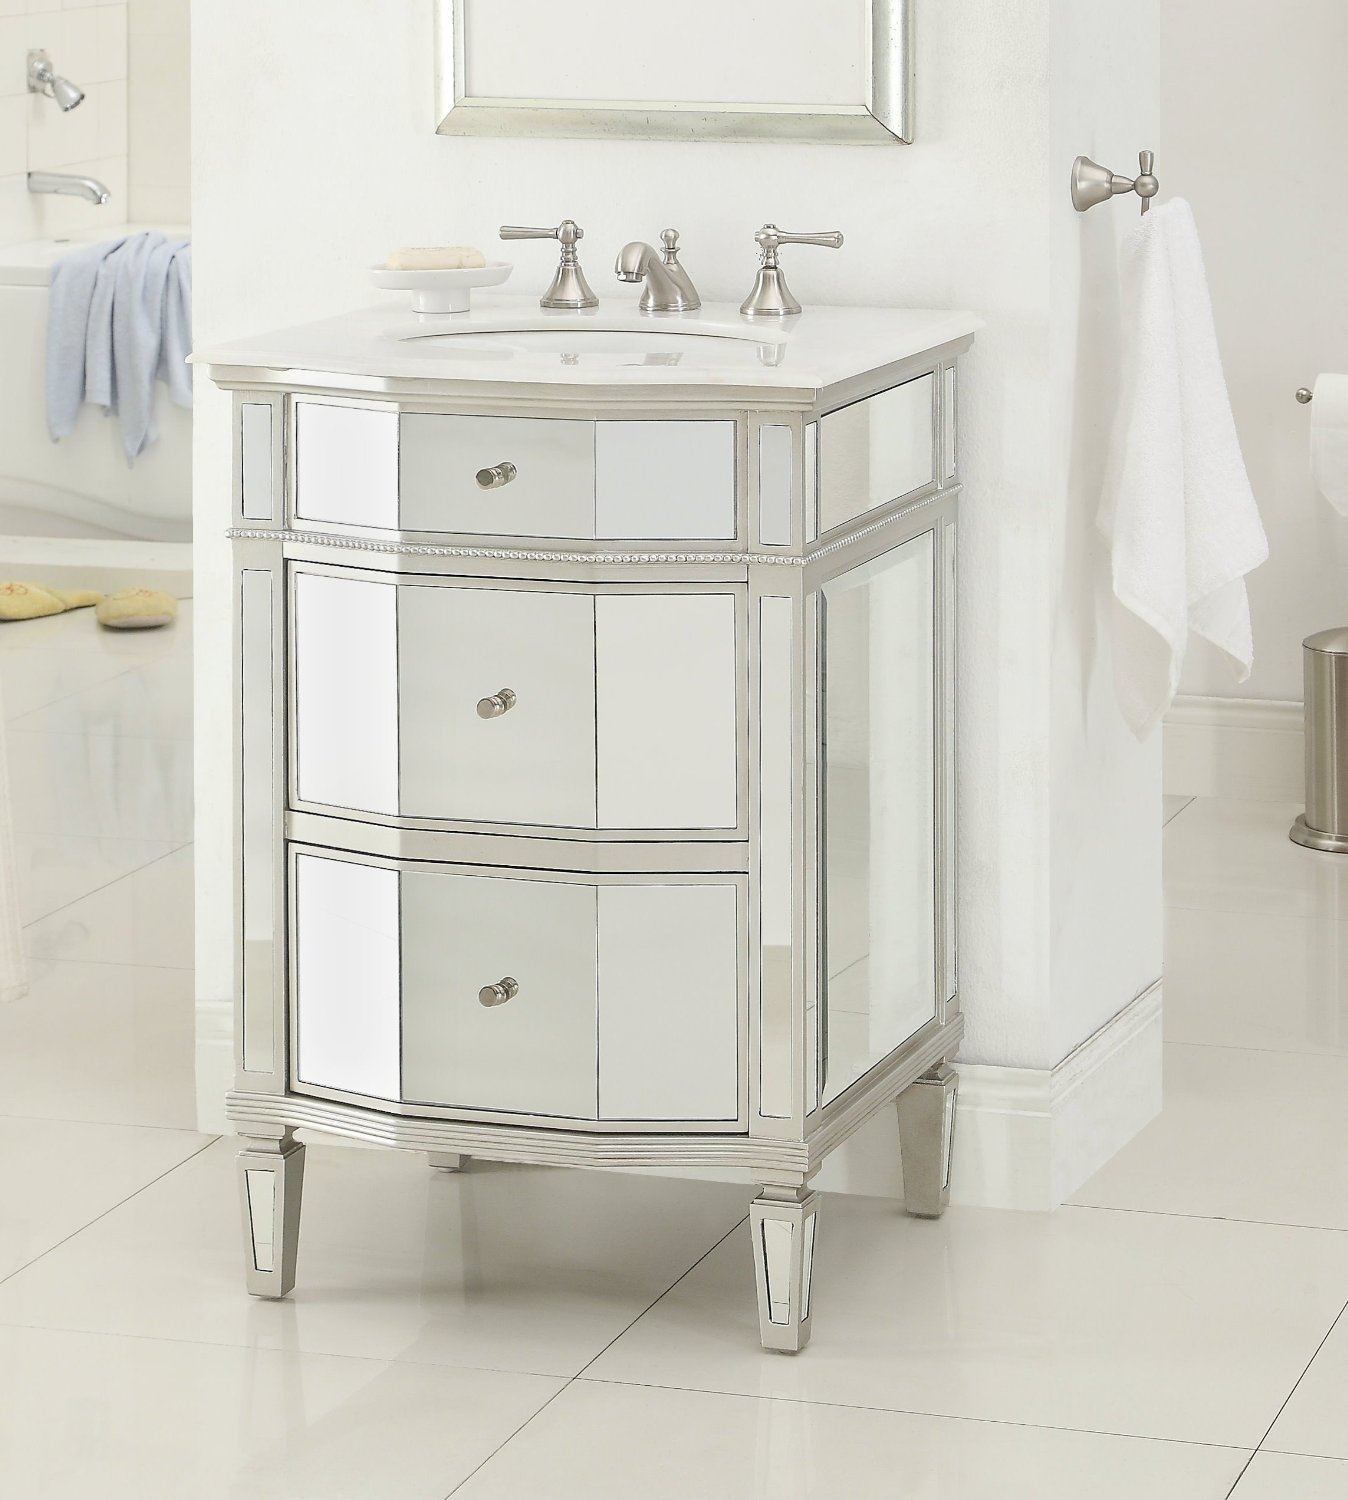 Bathroom Vanities 24 Inches And Under